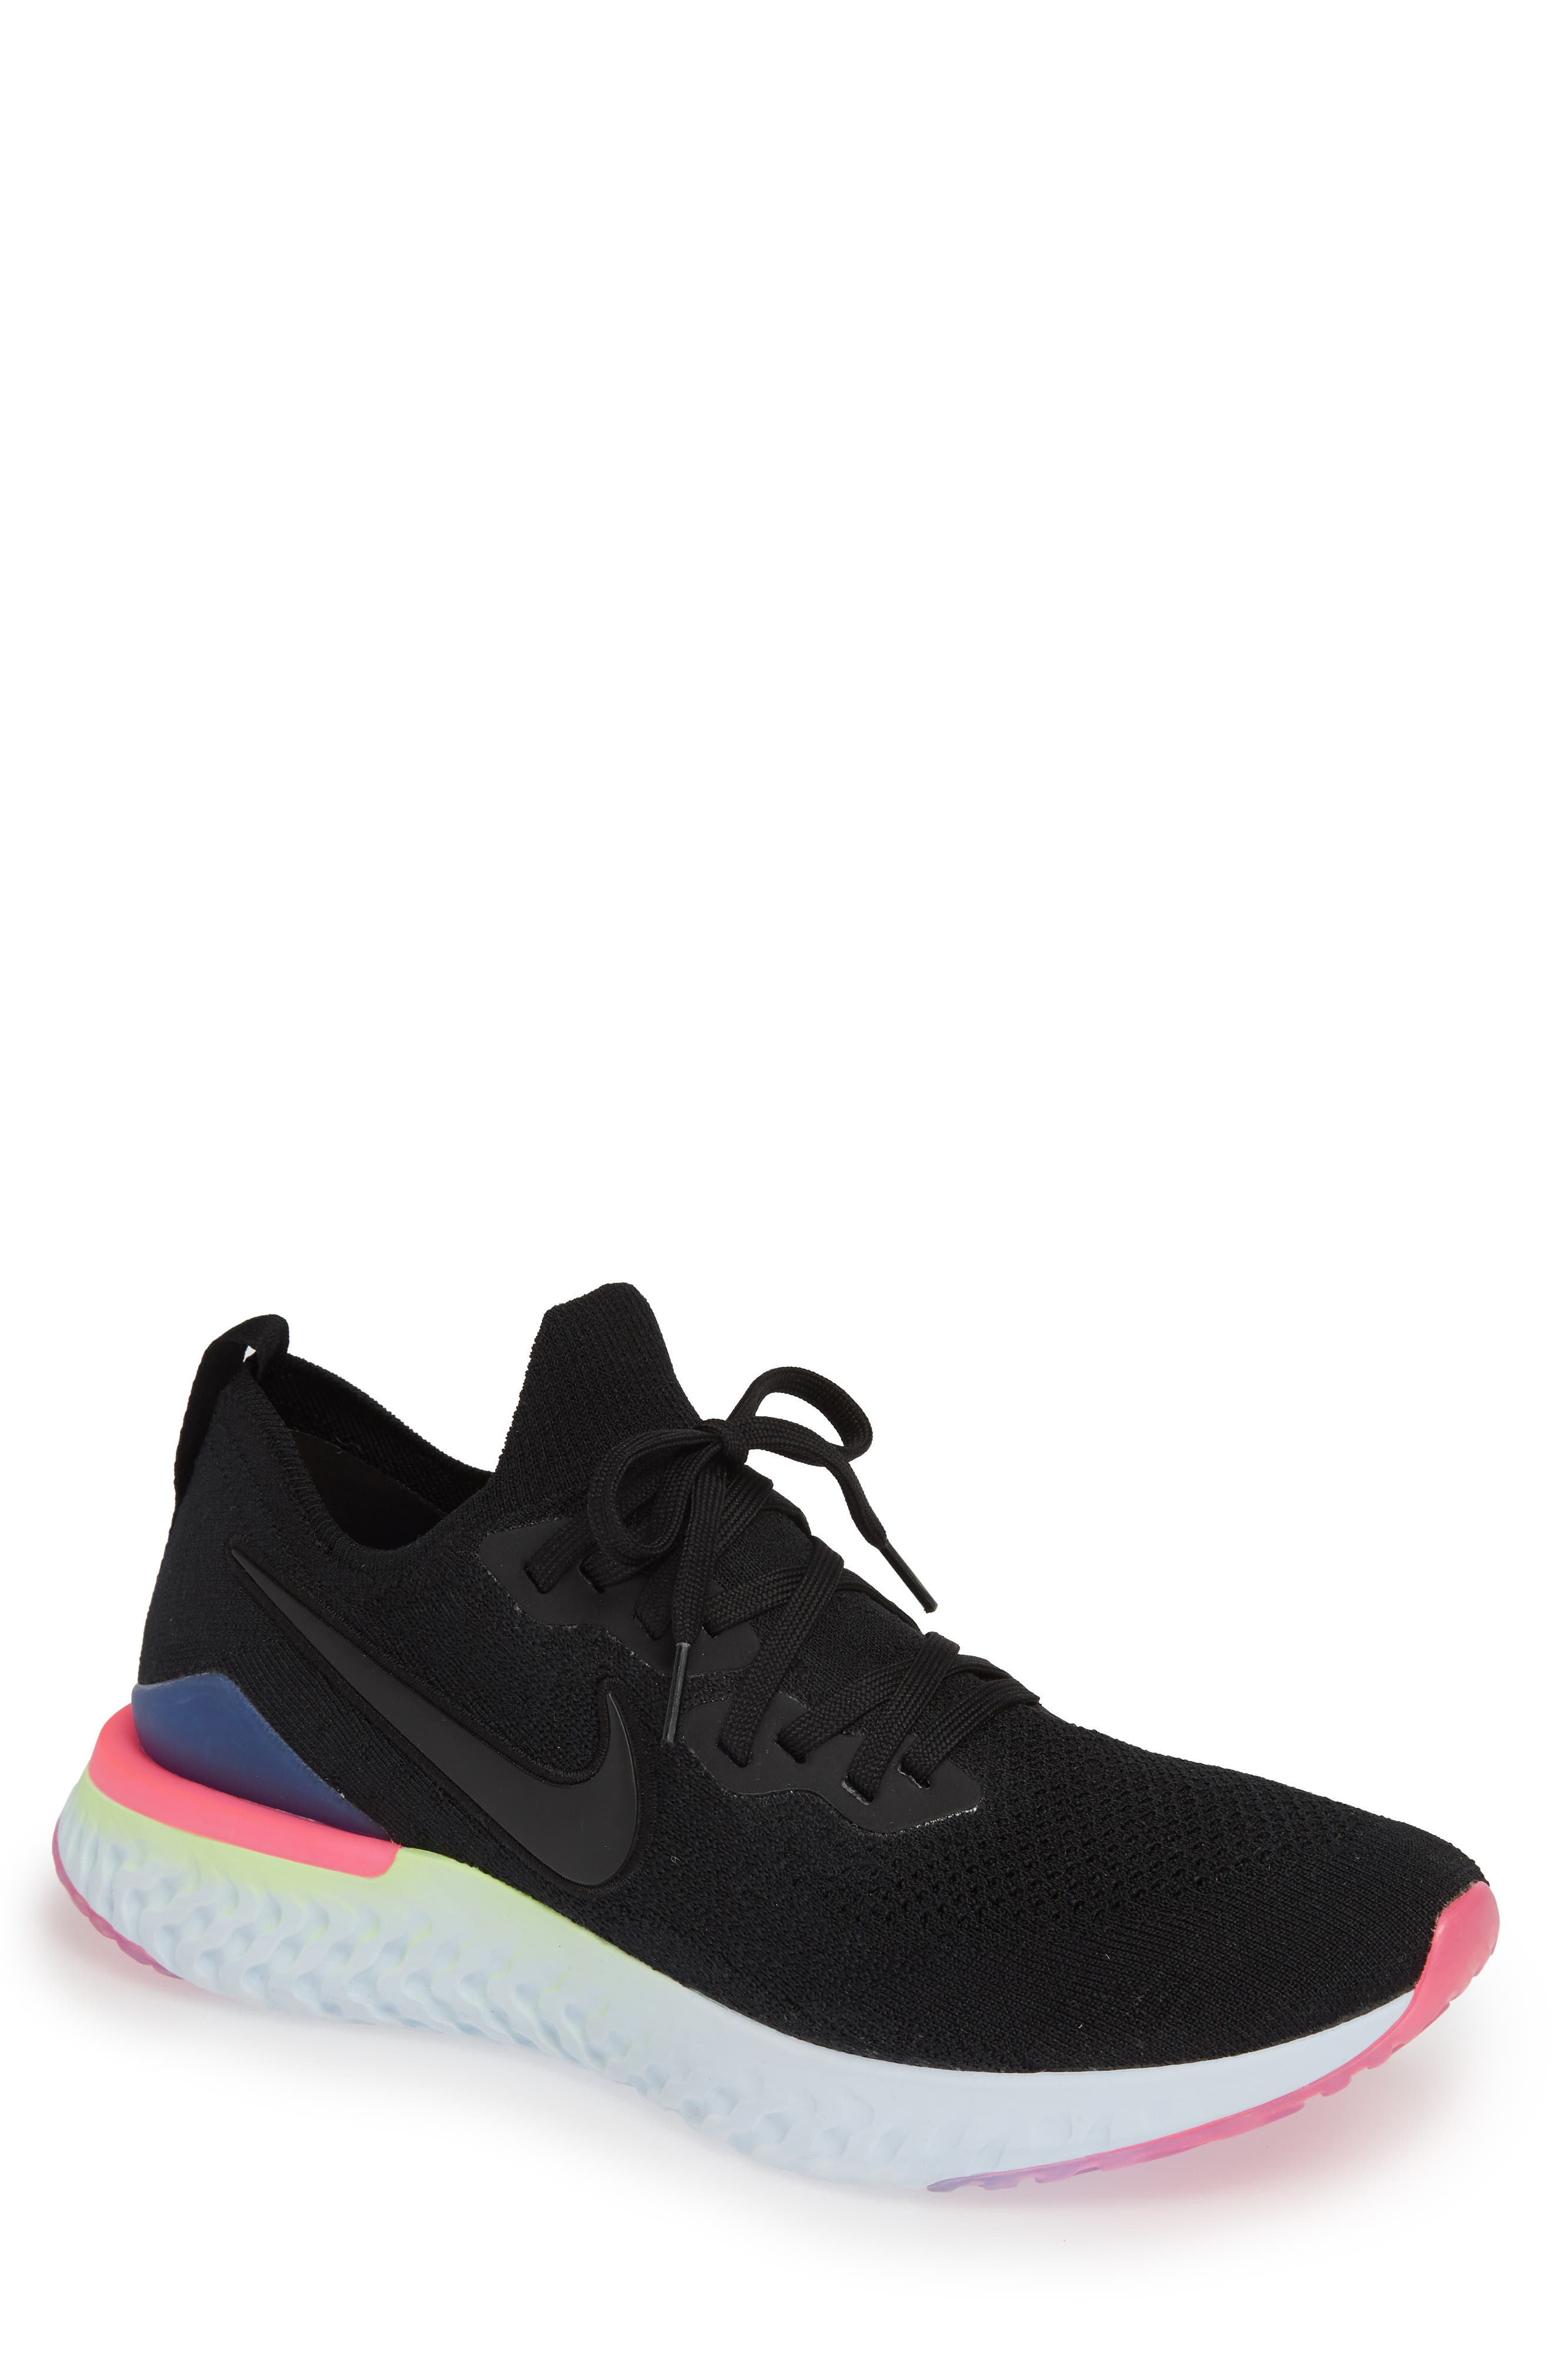 Epic React Flyknit 2 Running Shoe, Main, color, BLACK/ SAPPHIRE/ LIME BLAST